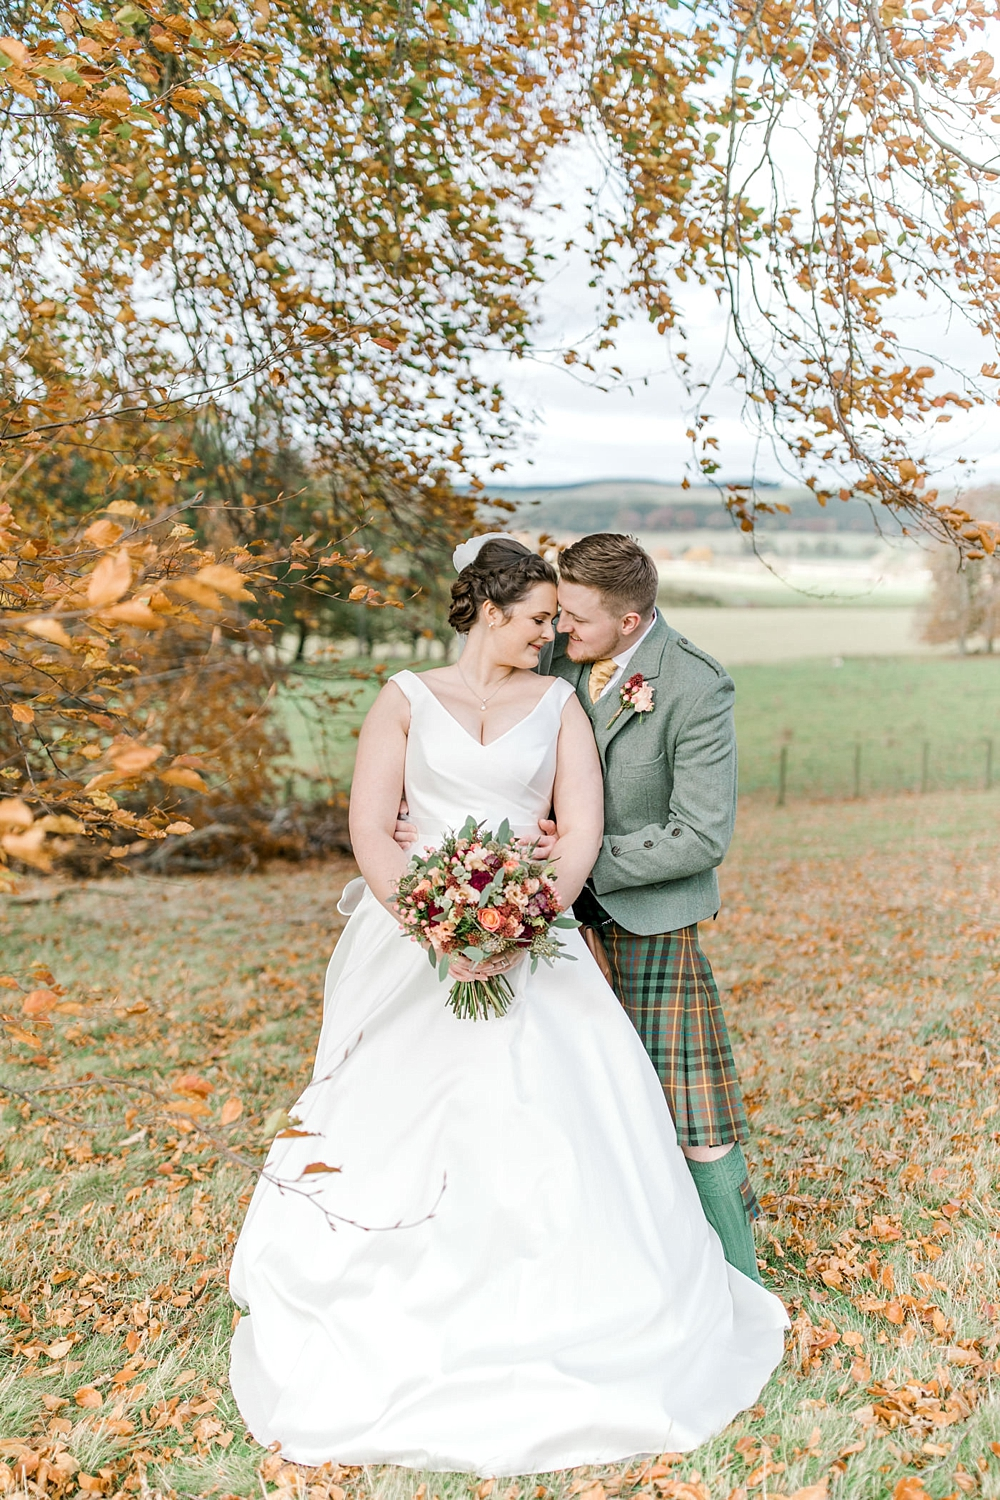 Fine Art Wedding Photographers,Glasgow Bride,The Gibsons,light and bright,natural wedding photographers,romantic photographers Scotland,soft wedding photographers,the gibsons wedding photography,two wedding photographers scotland,